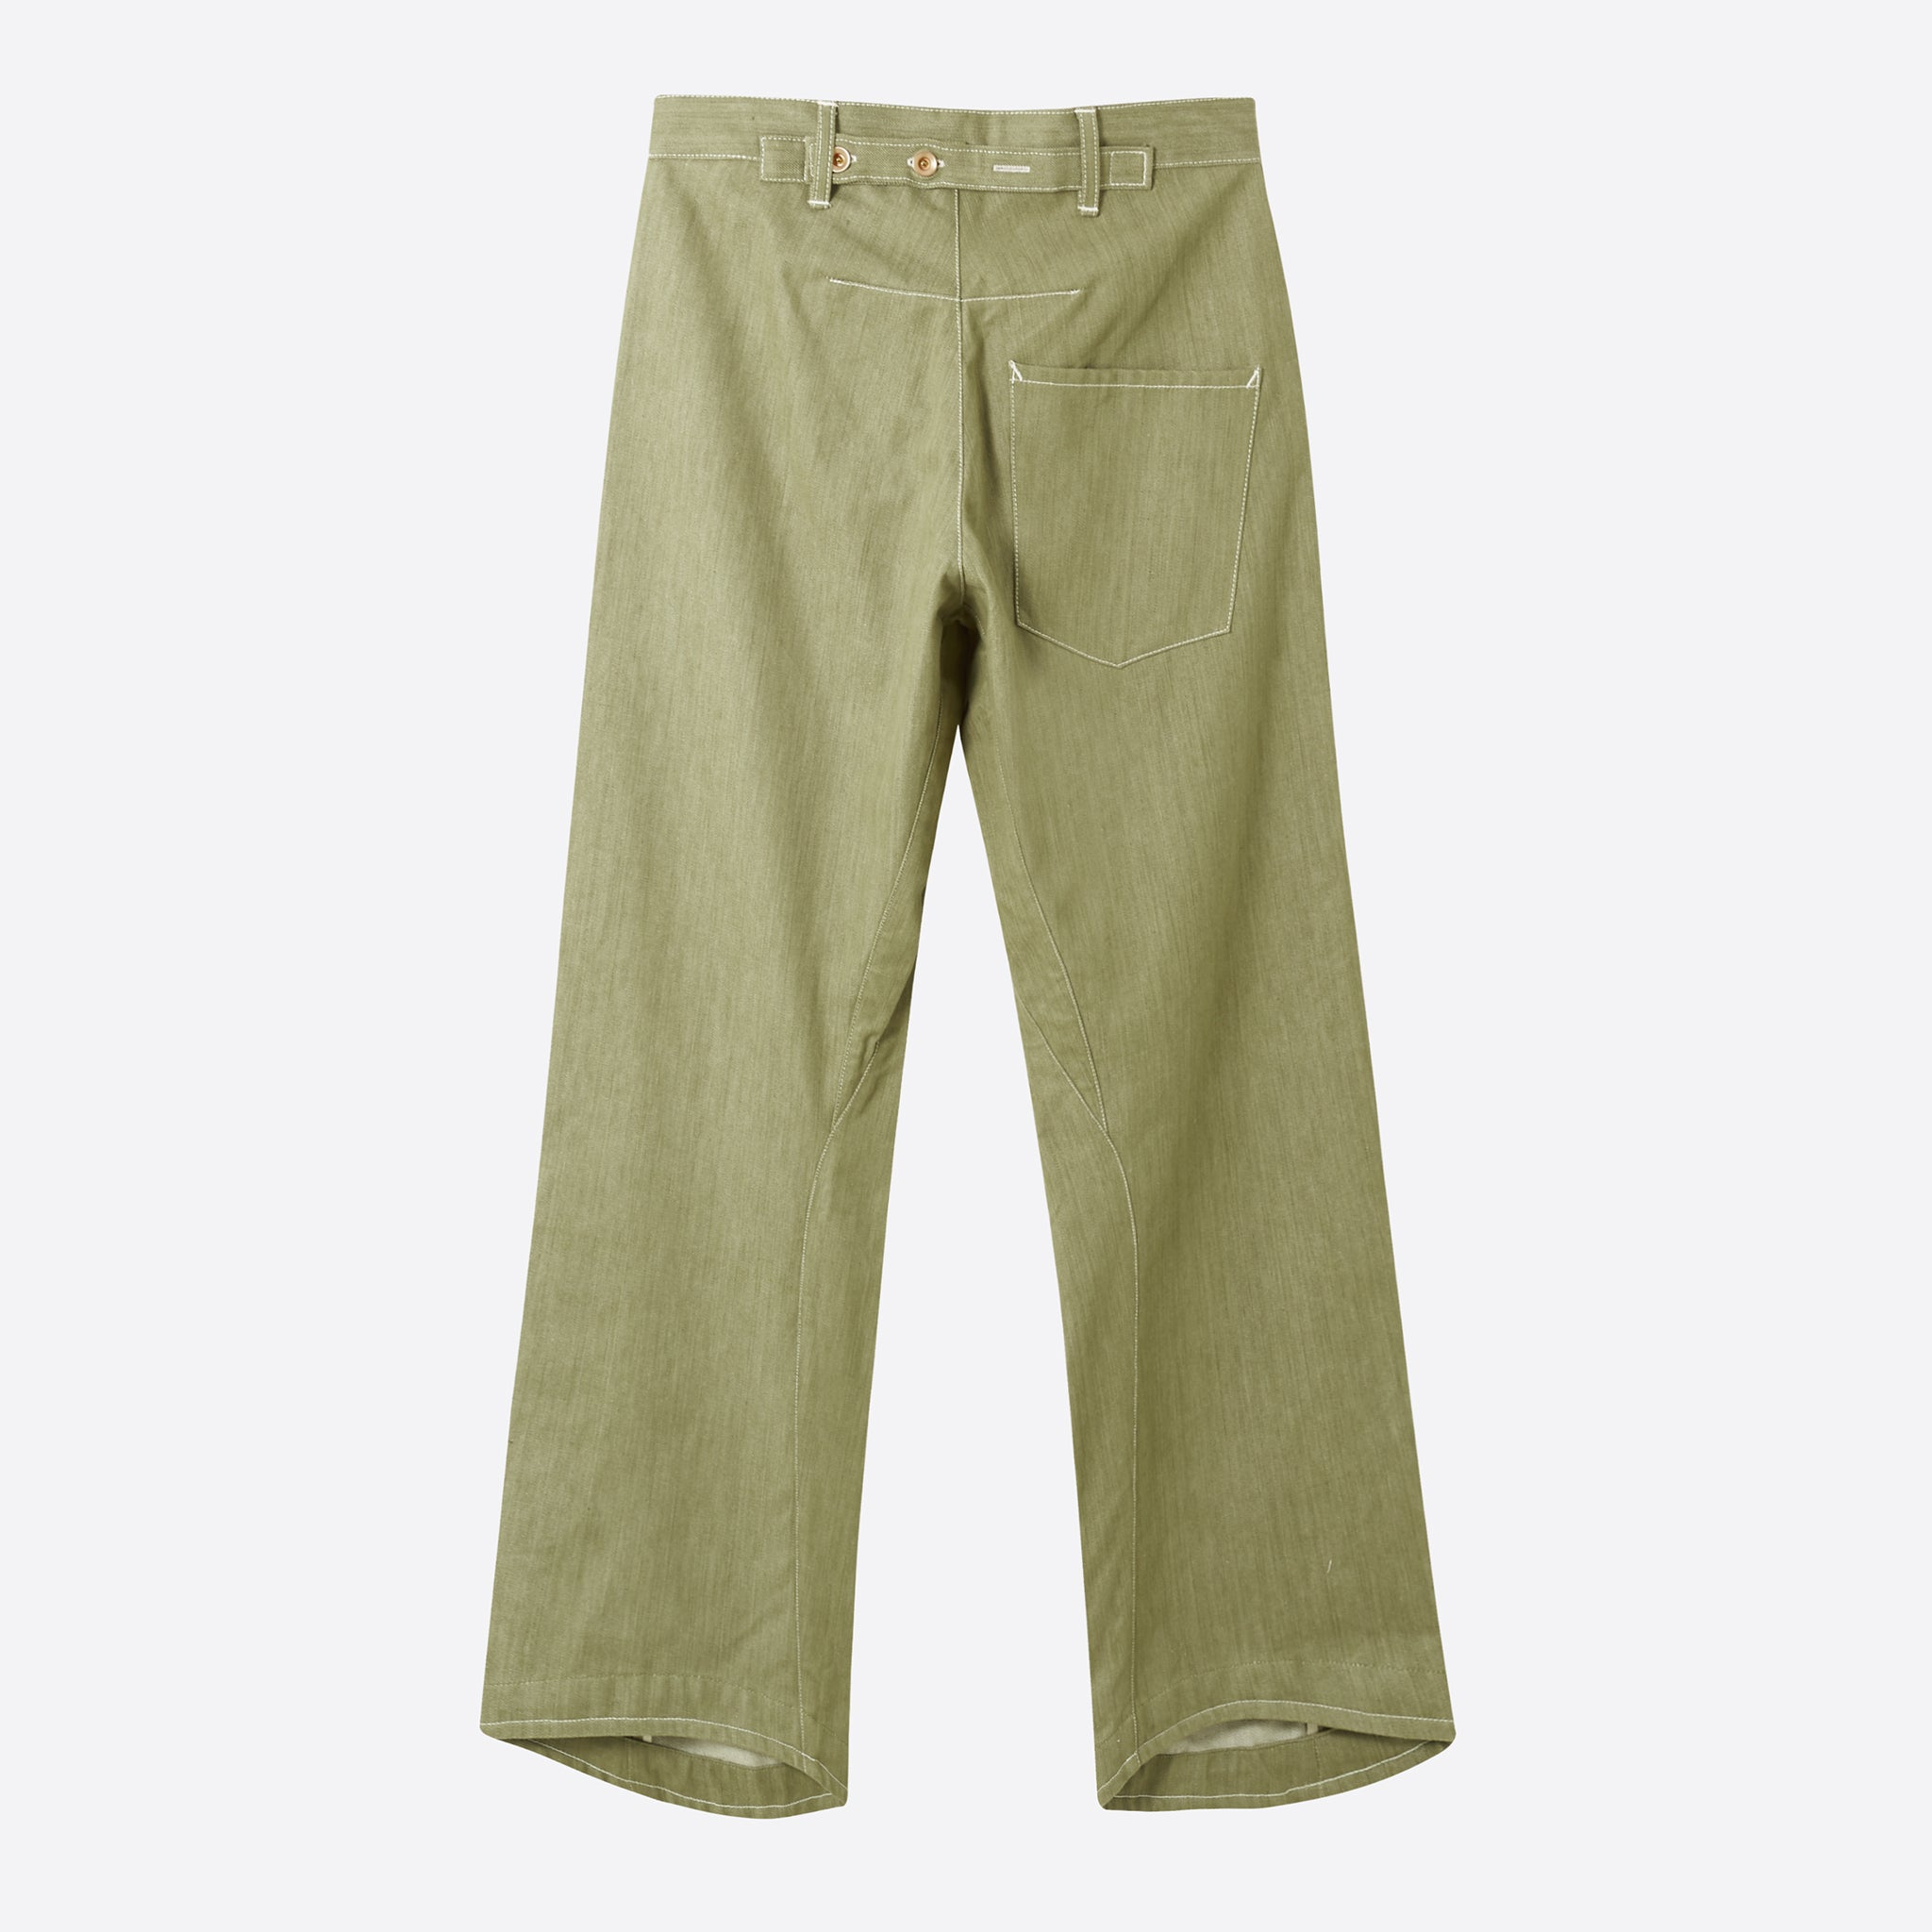 STORY Mfg Twisty Boy Jeans in Khaki Selvedge Denim